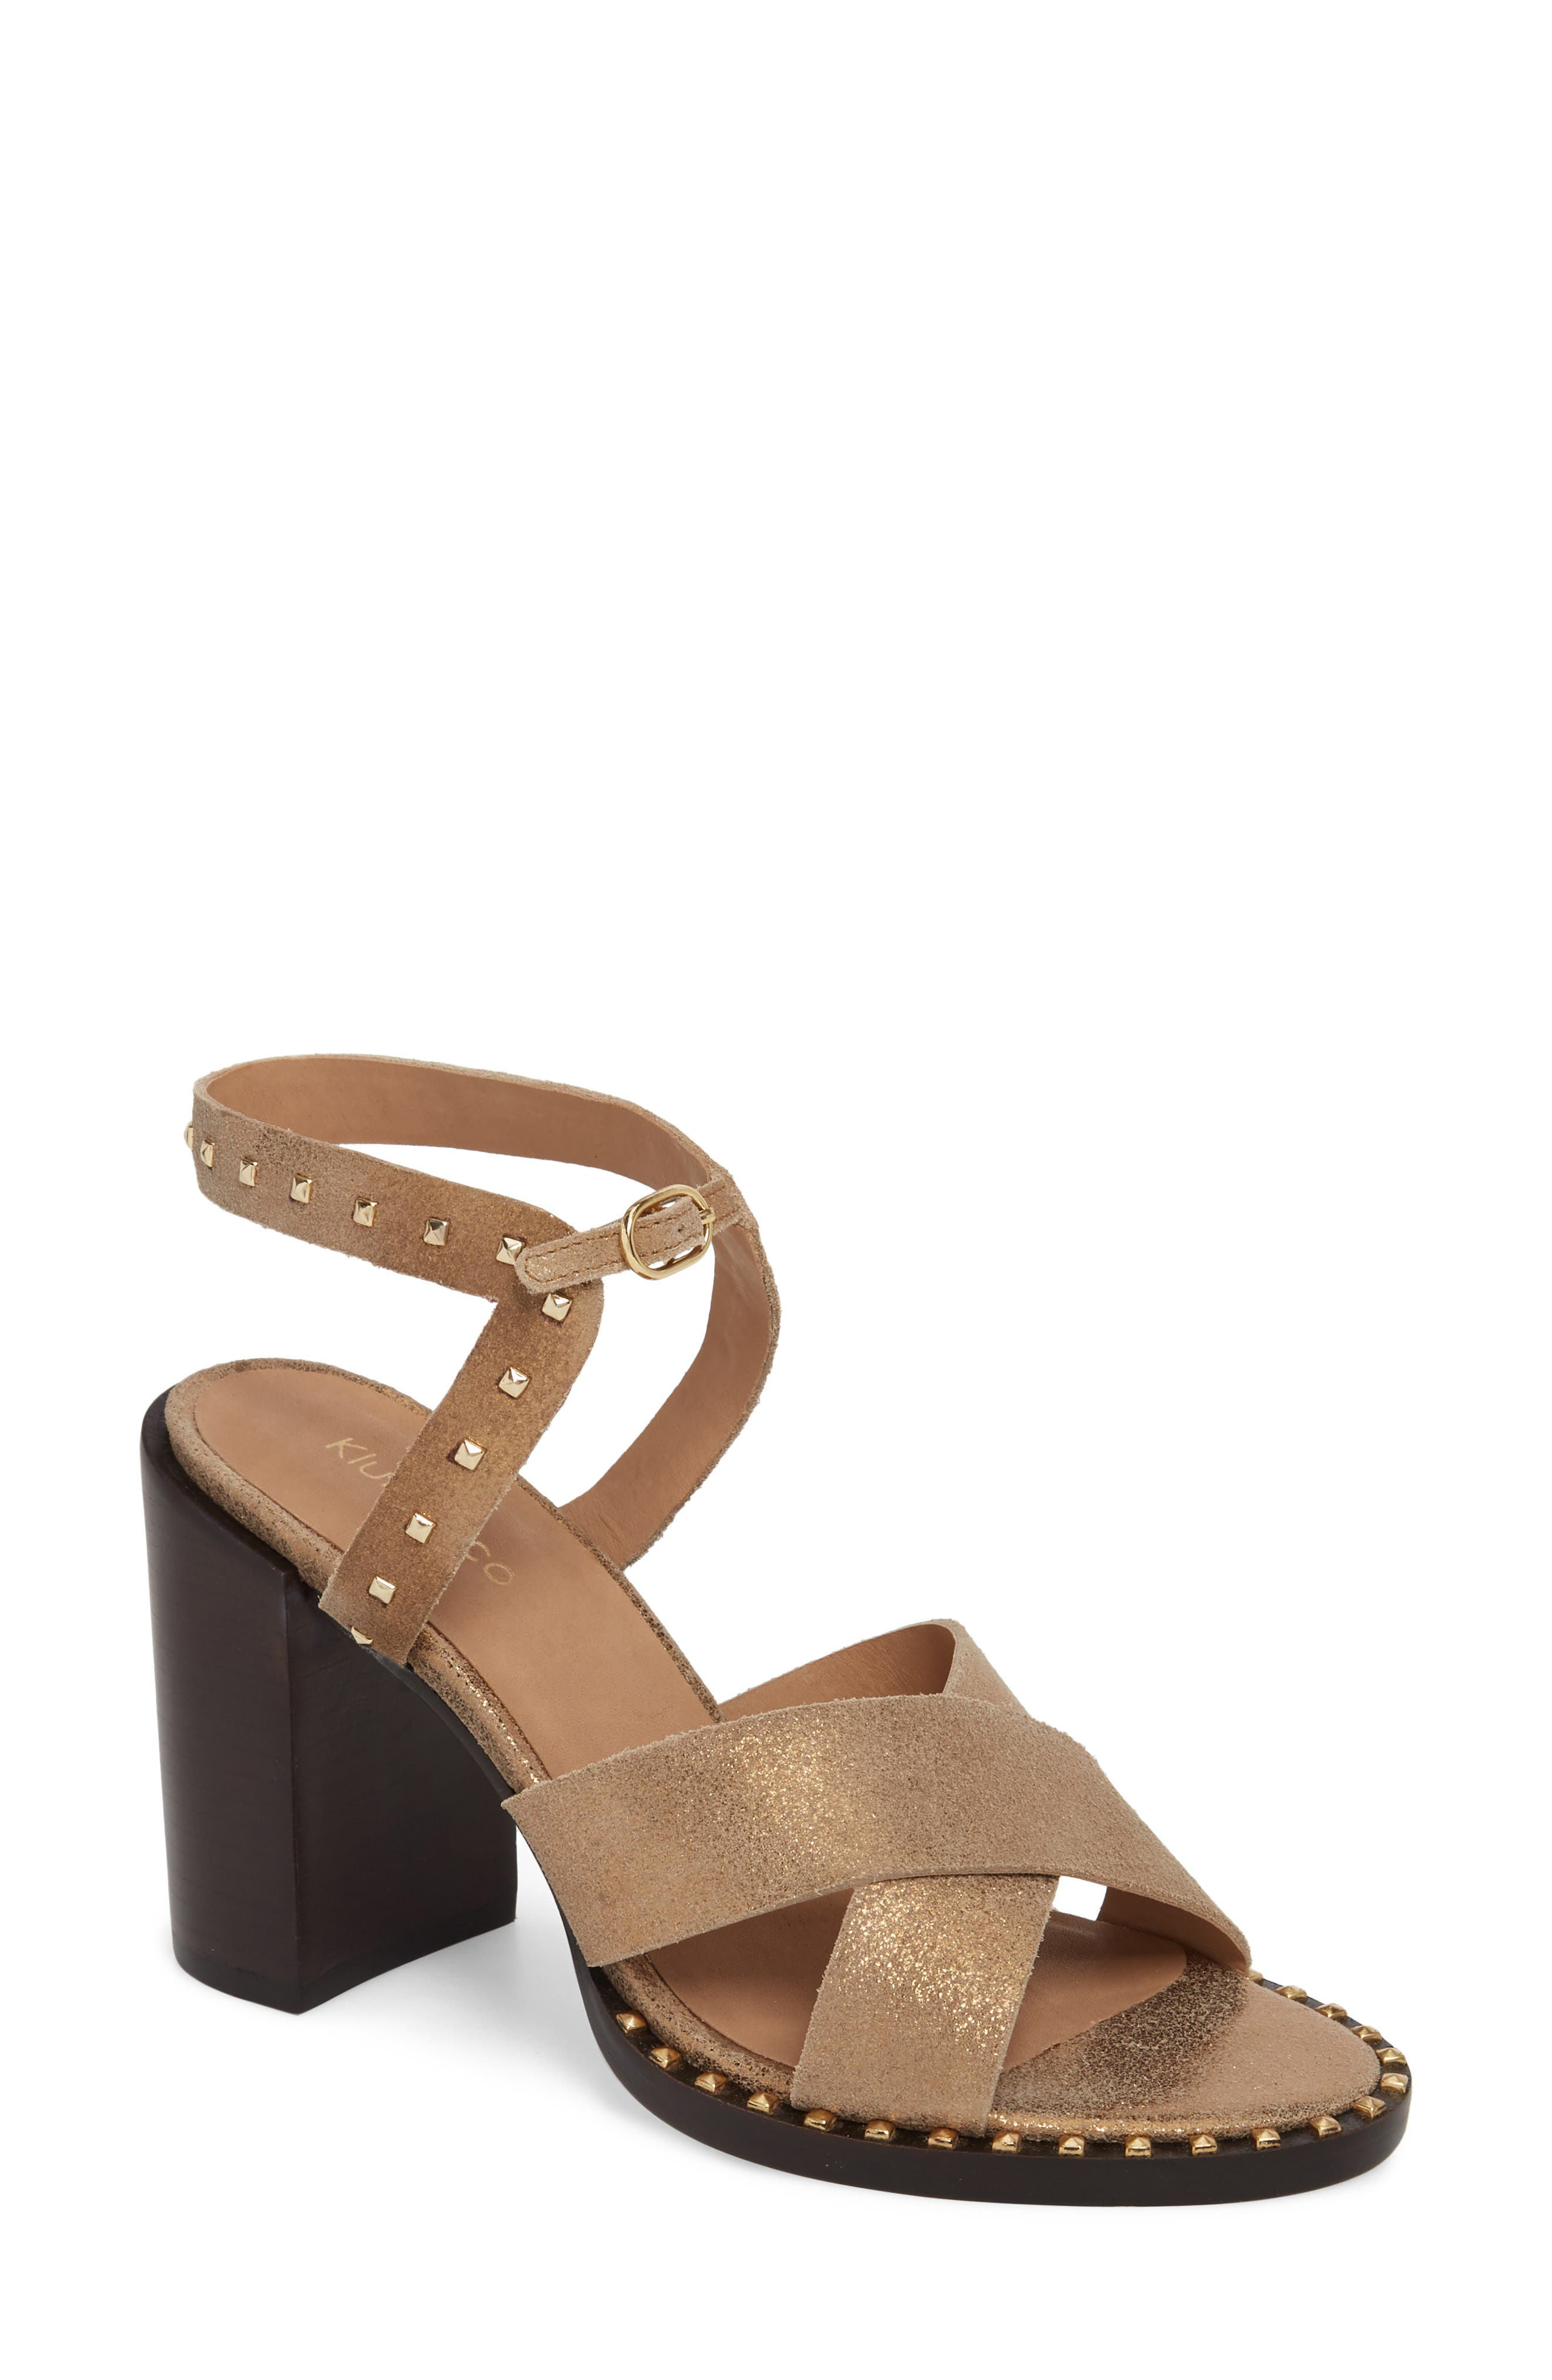 Tabia Sandal,                         Main,                         color, Bronze Suede